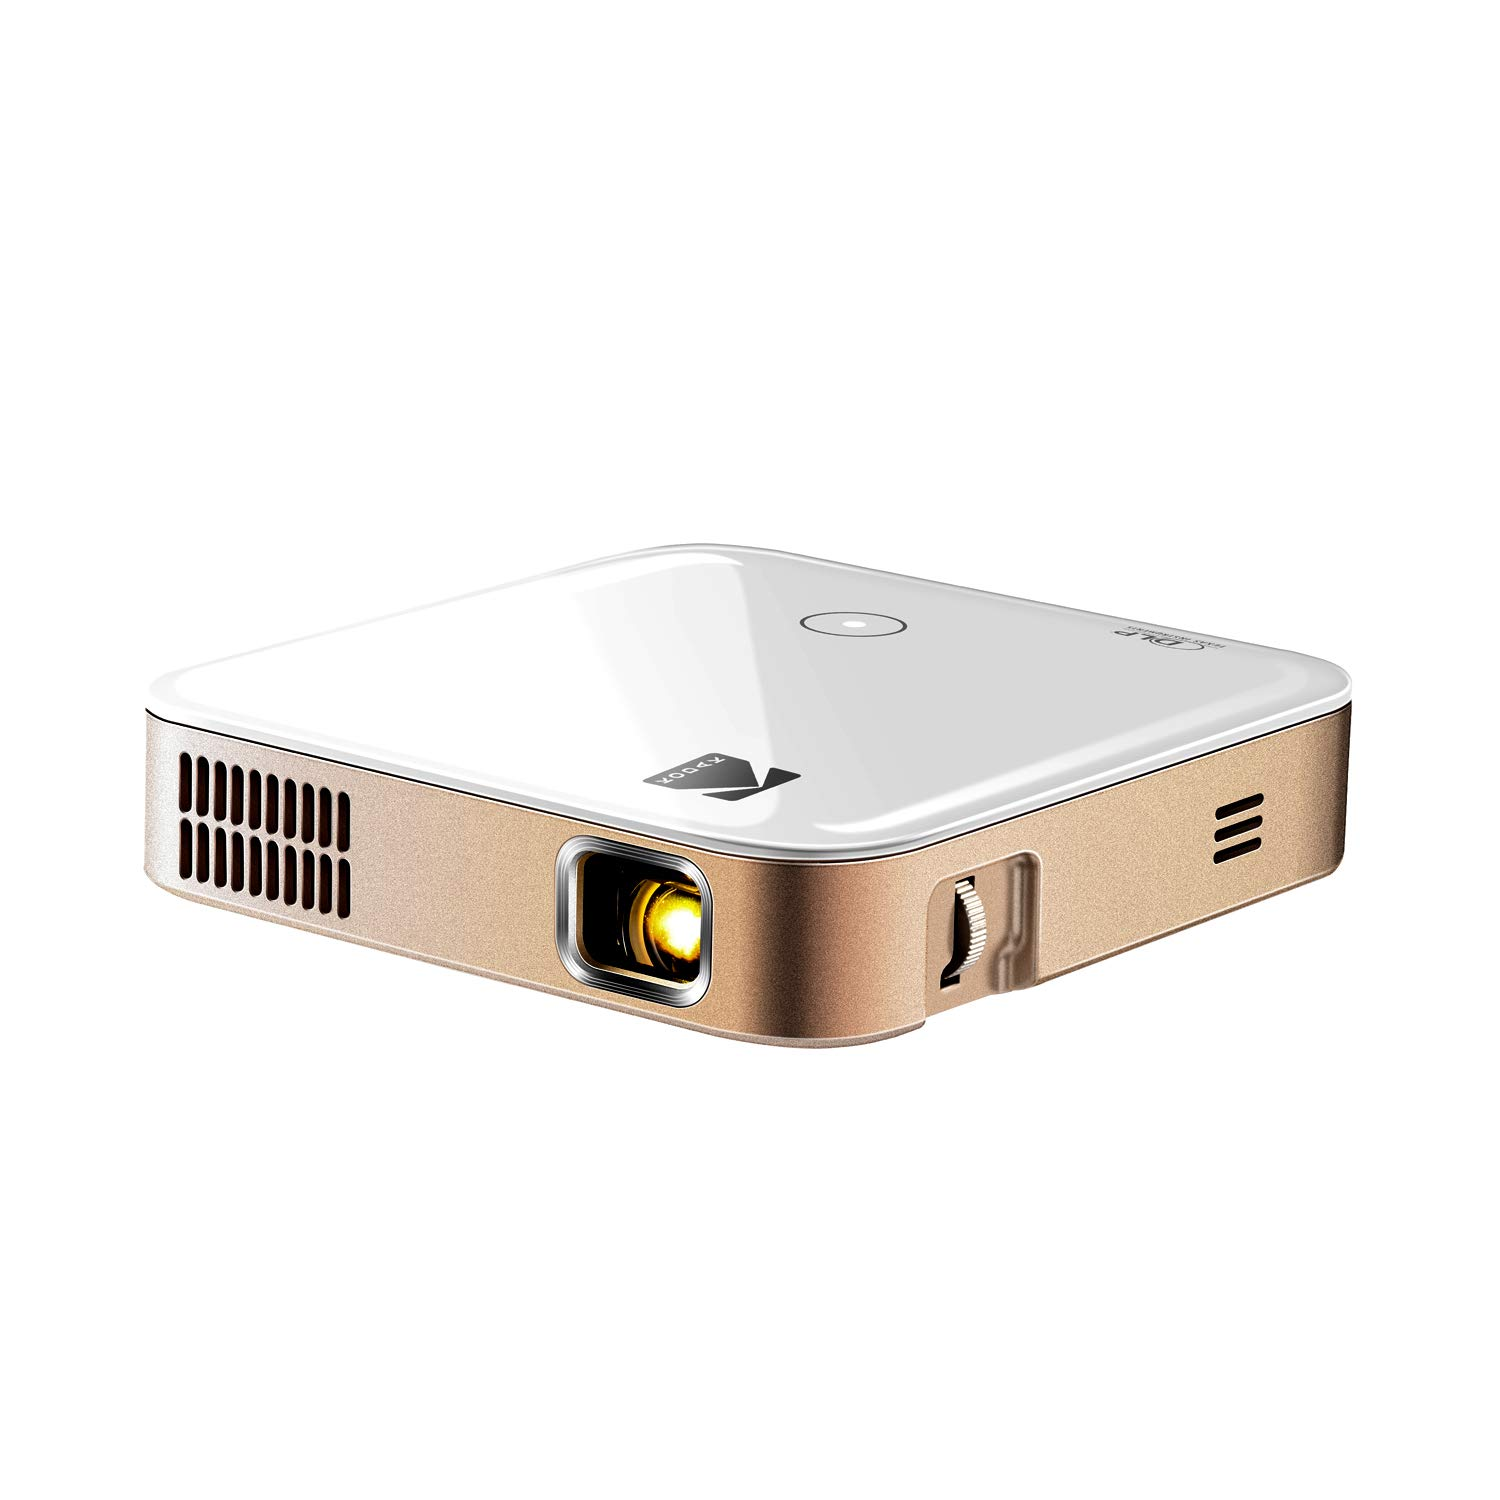 Kodak Luma 350 Portable Smart Wi-Fi Ultra HD Mini Projector | Powerful 4K Supported Rechargeable Video Projector w/Android , Streaming Apps, Mirroring, Remote Control & Crystal-Clear up to 200""